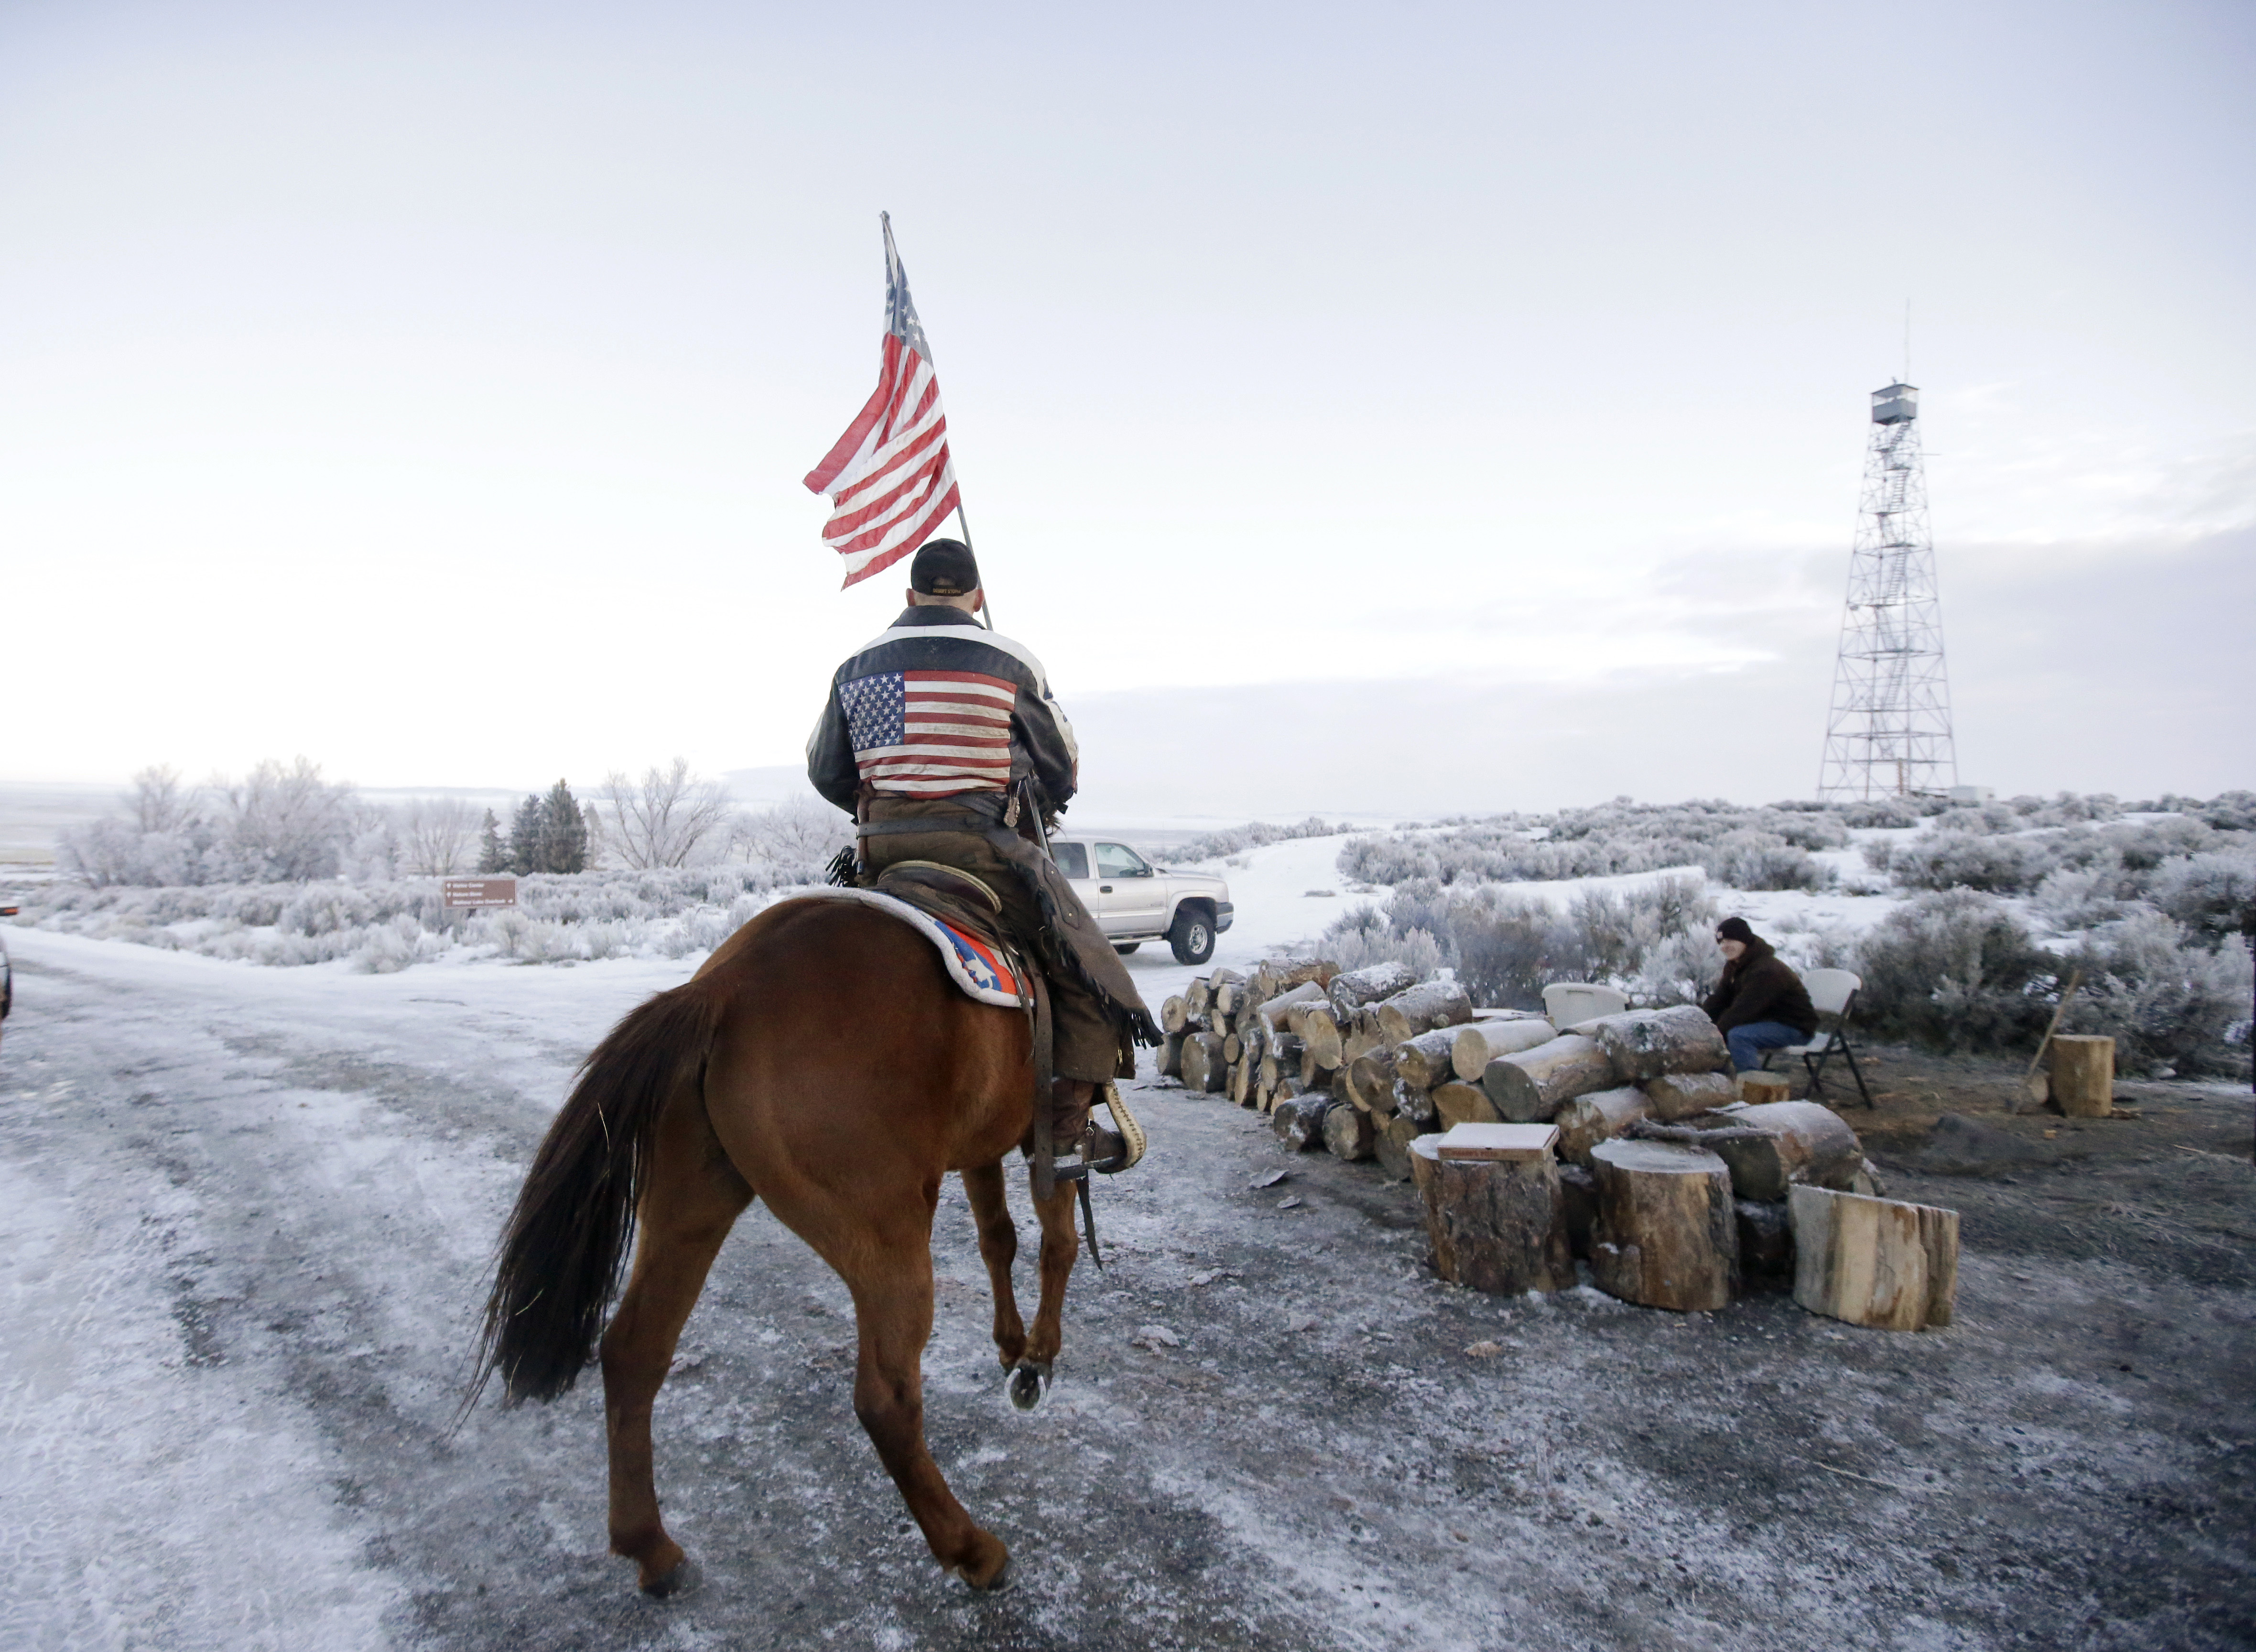 Idaho militia group arrive to 'secure perimeter, prevent Waco-style situation' at Oregon refuge